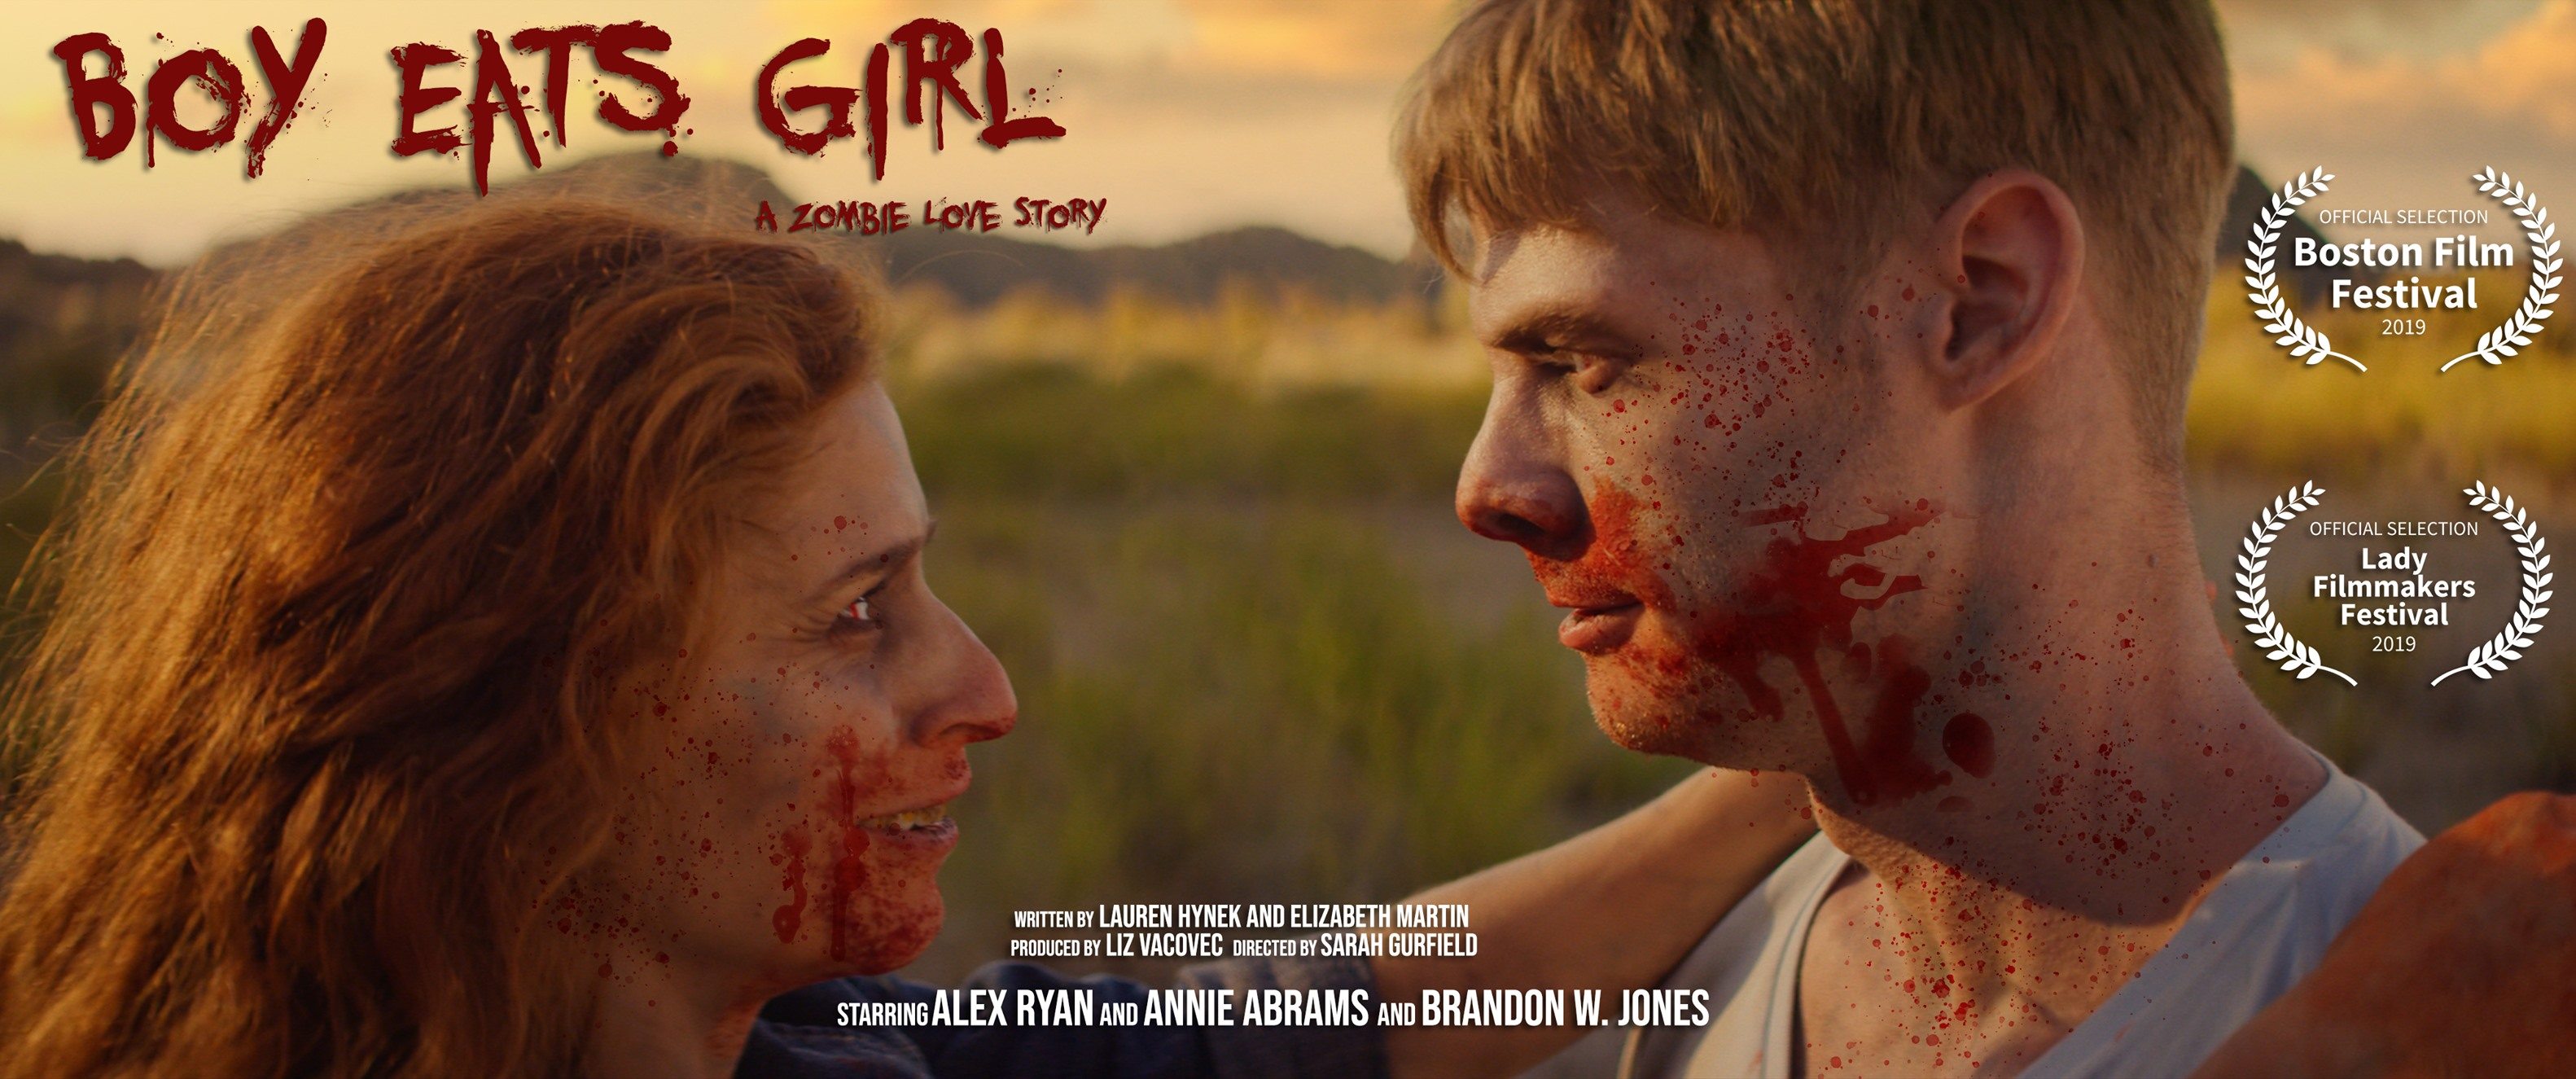 Boston Film Festival 'Boy Eats Girl: A Zombie Love Story'